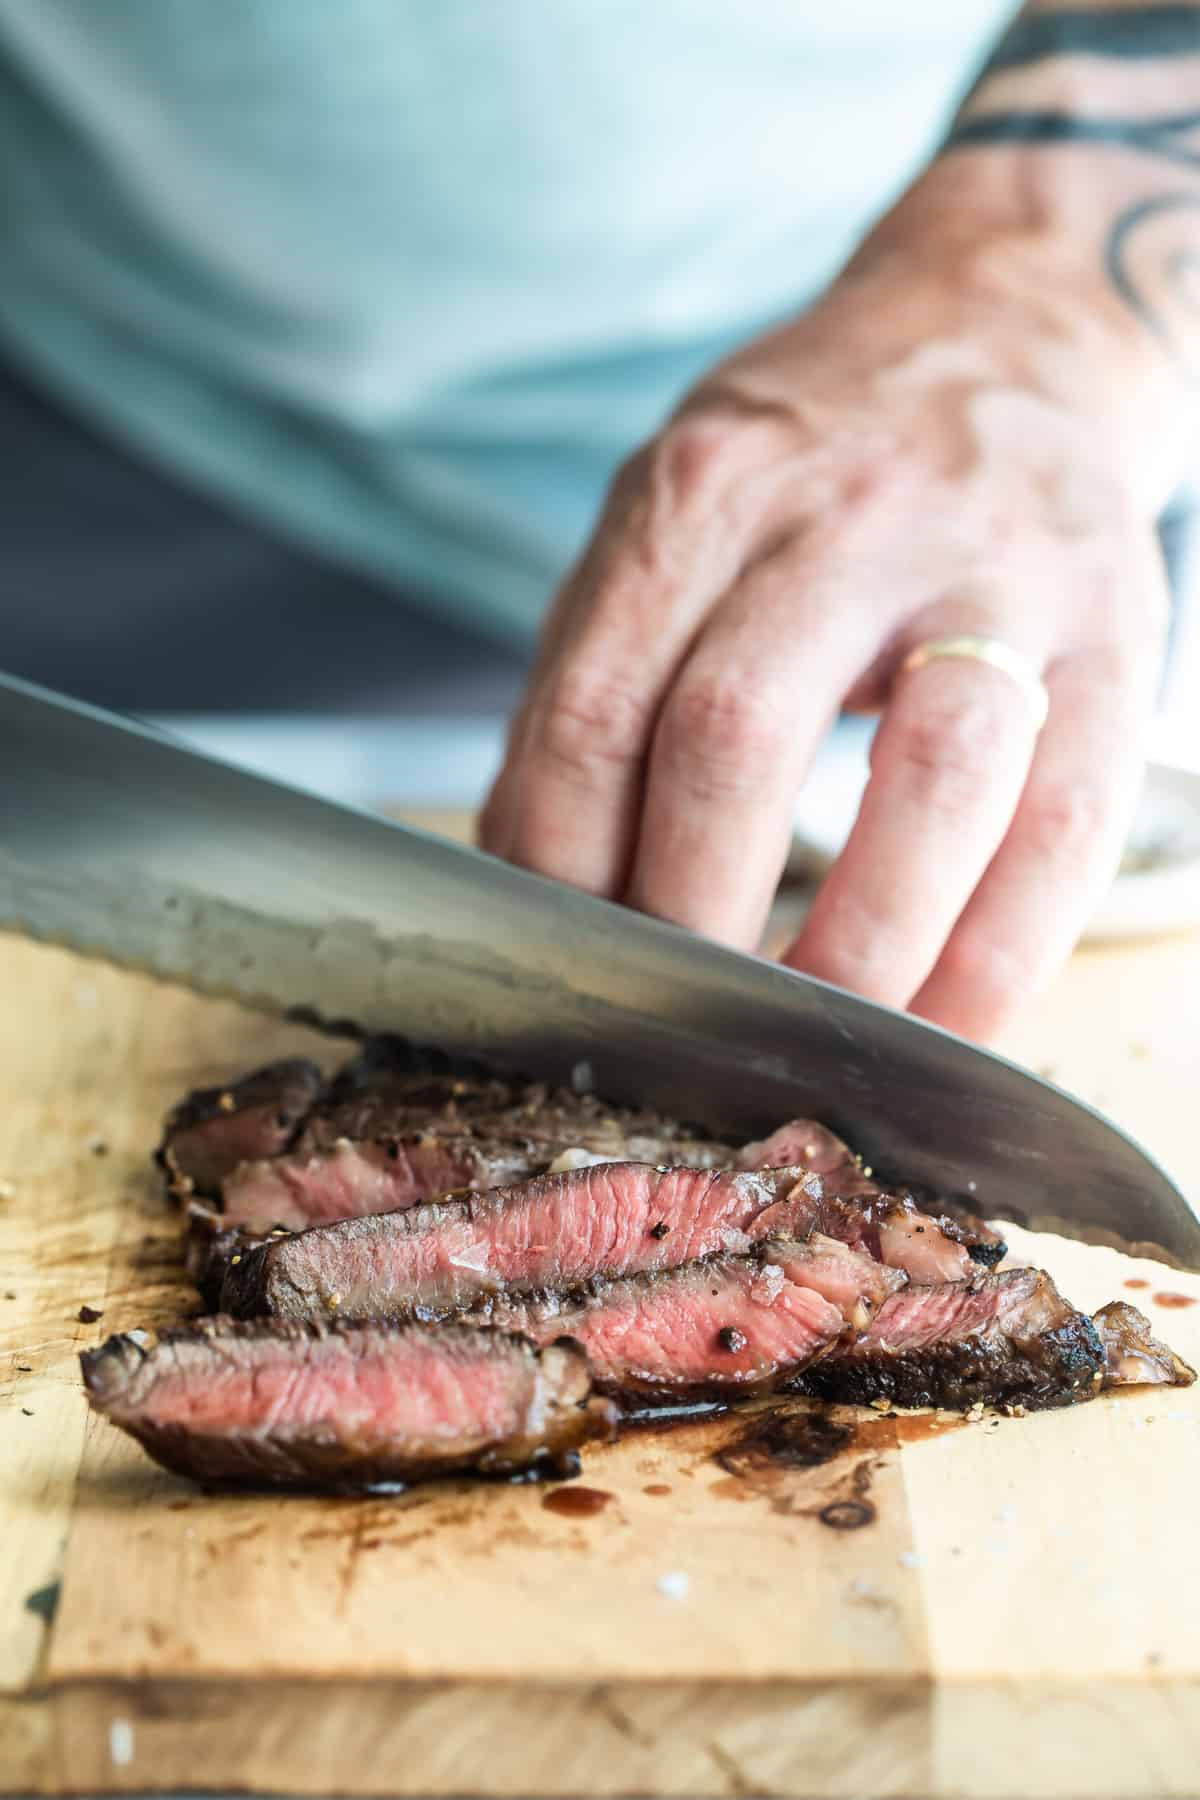 showing how to grill a ribeye steak